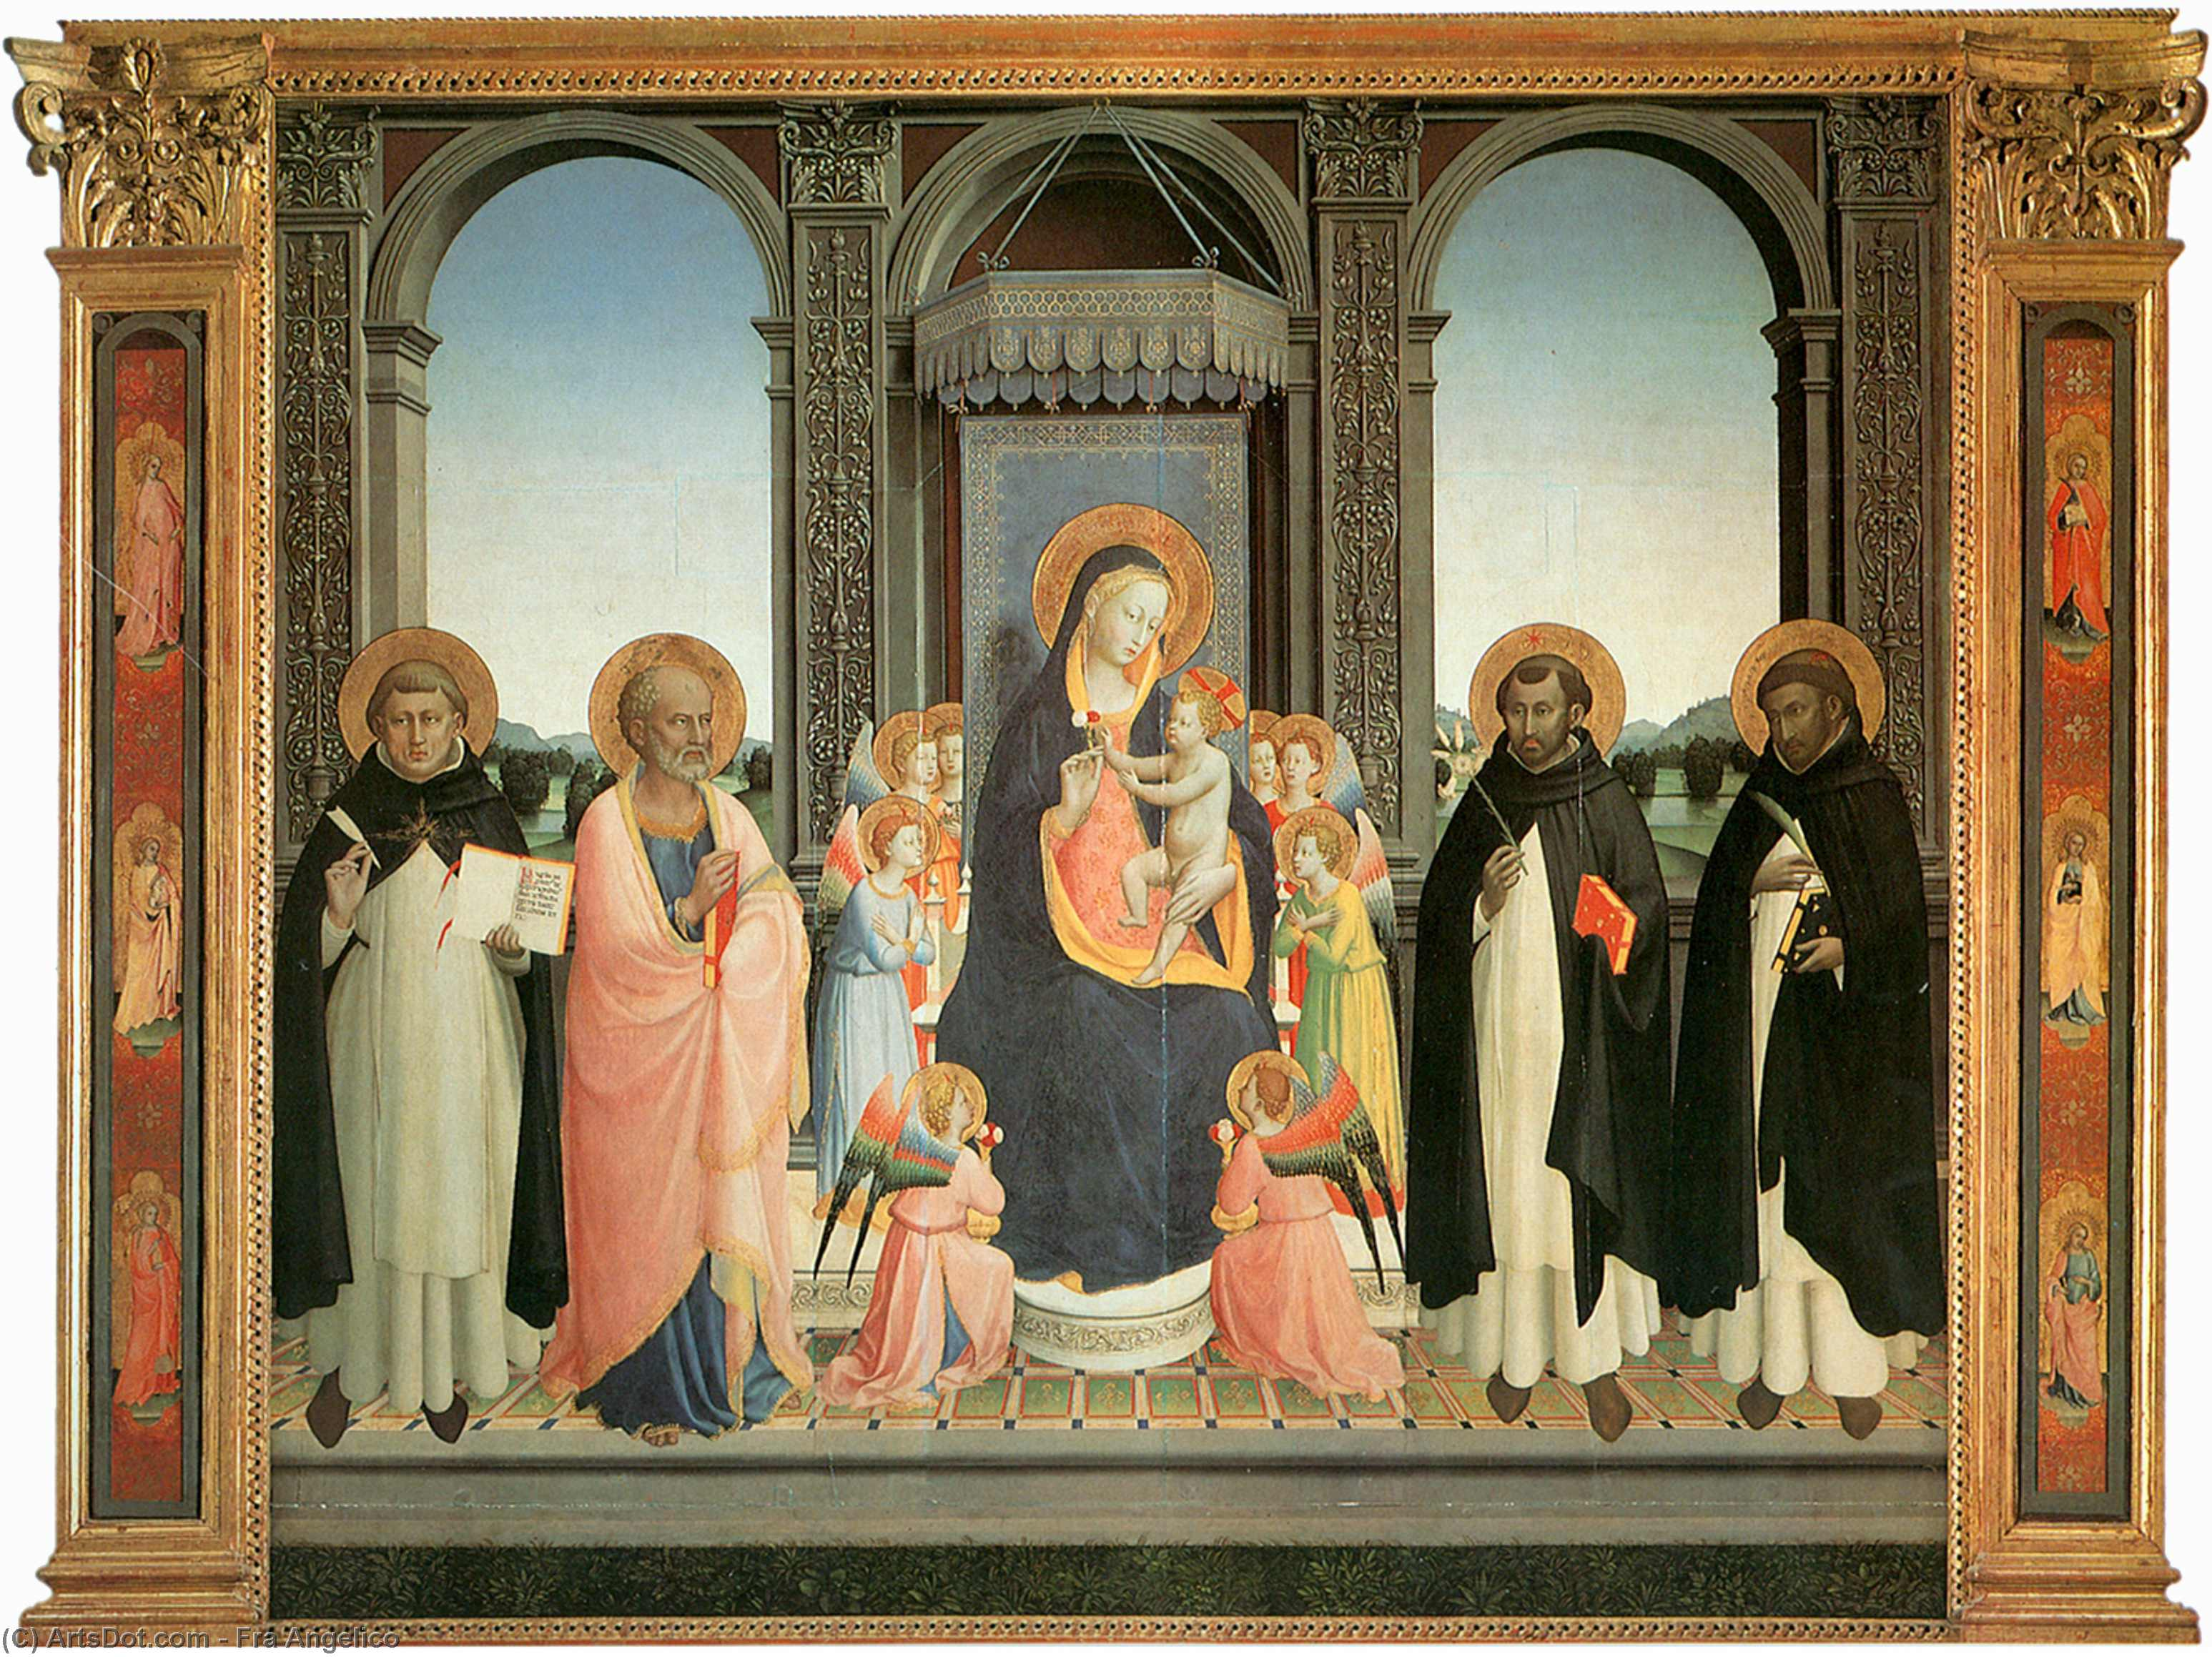 Wikioo.org - The Encyclopedia of Fine Arts - Painting, Artwork by Fra Angelico - San Domenico Altarpiece